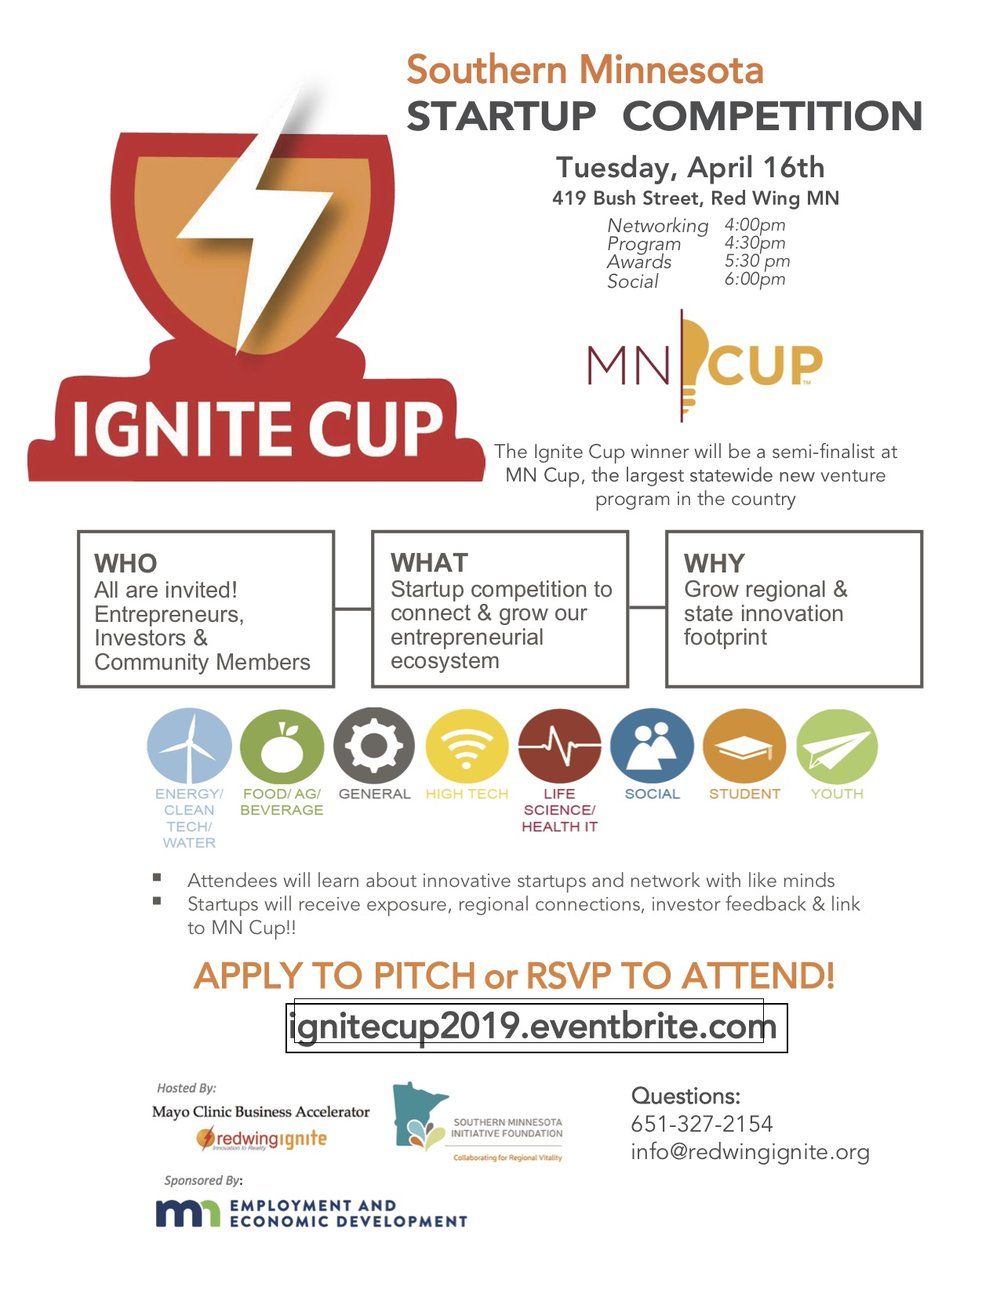 ignite cup invite 2 13 19.jpg